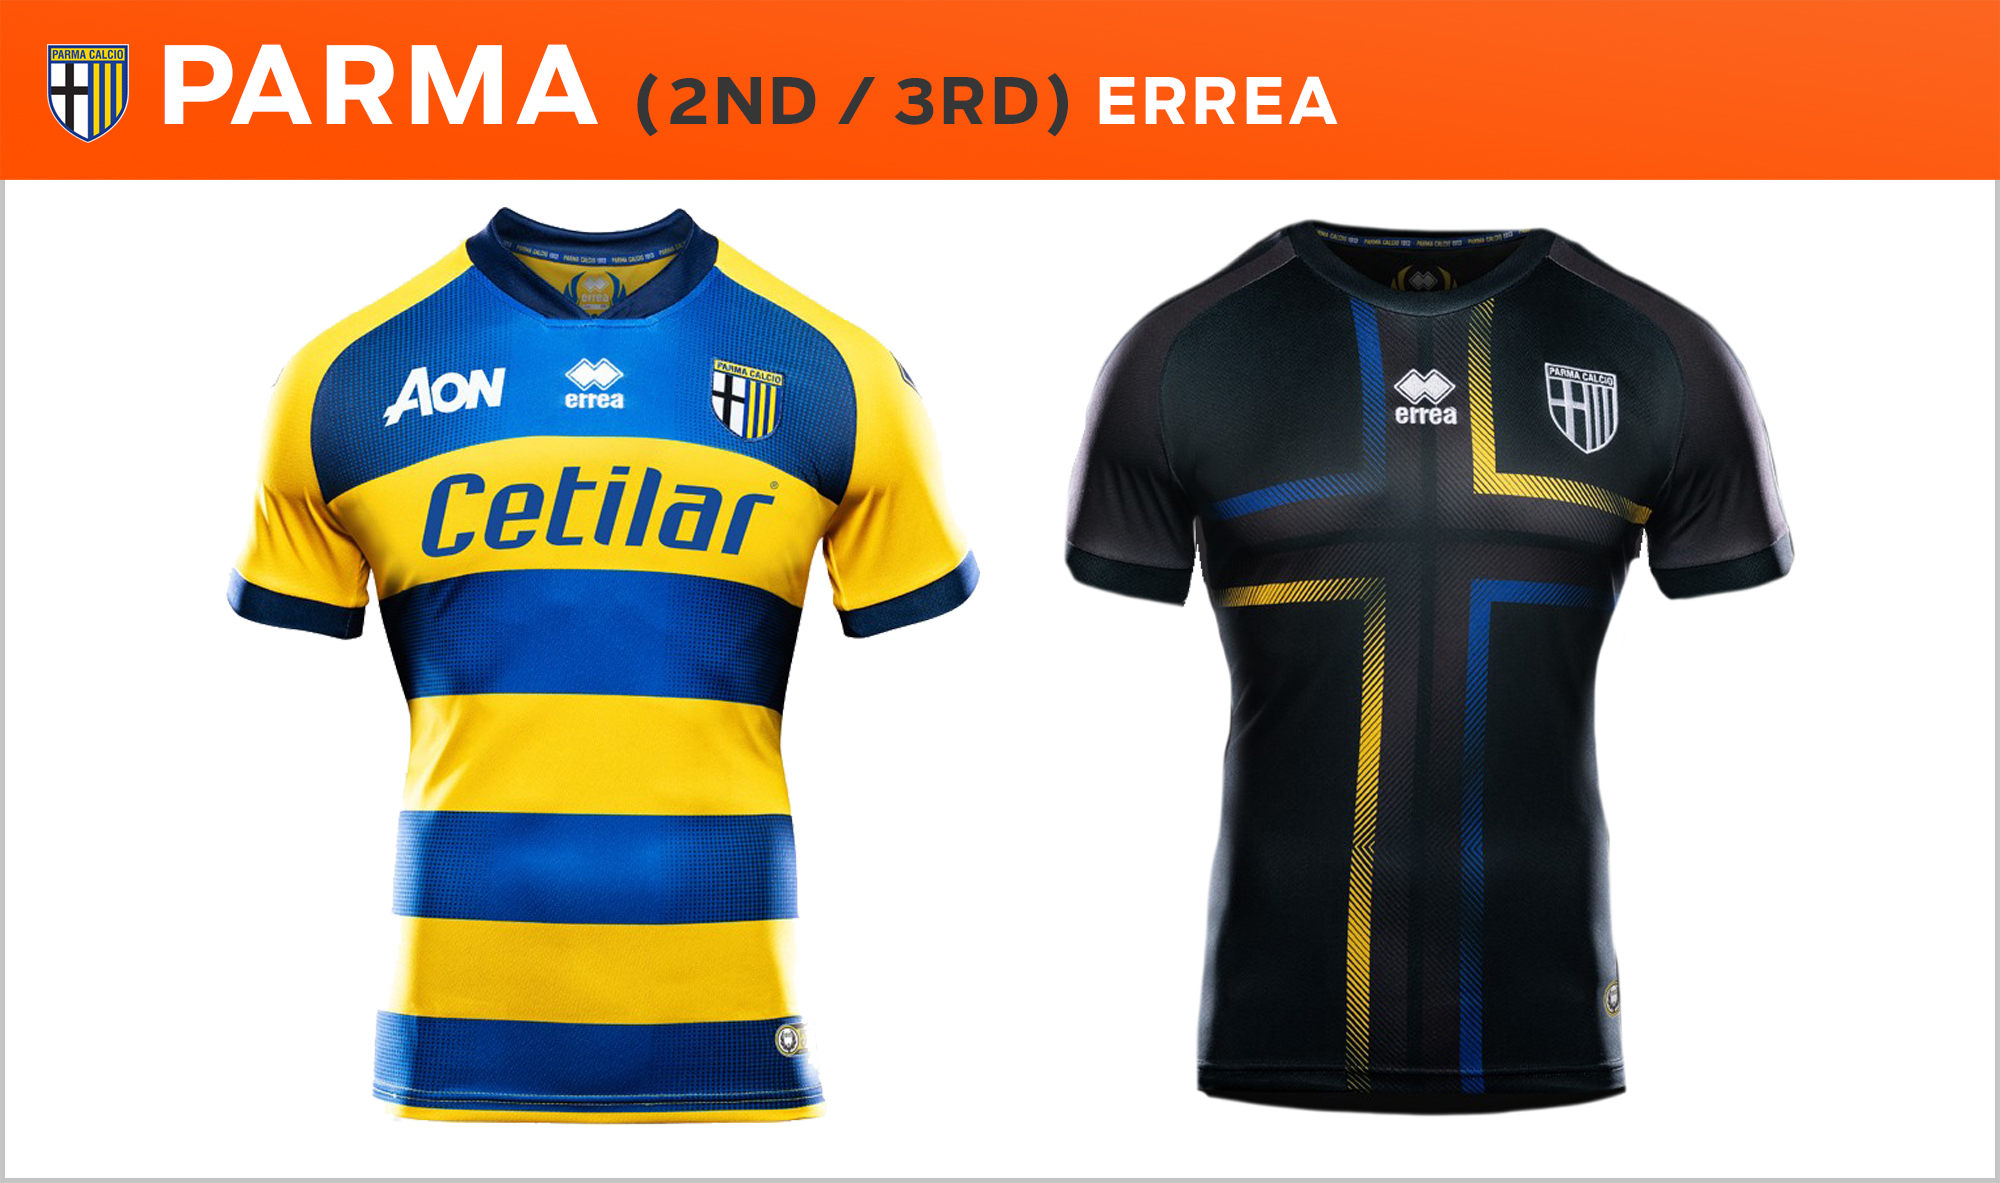 37d420be4cd There s not enough space to write how beautiful Parma s dark 3rd kit is  (see more here). First and second stocks of it sold out immediately.